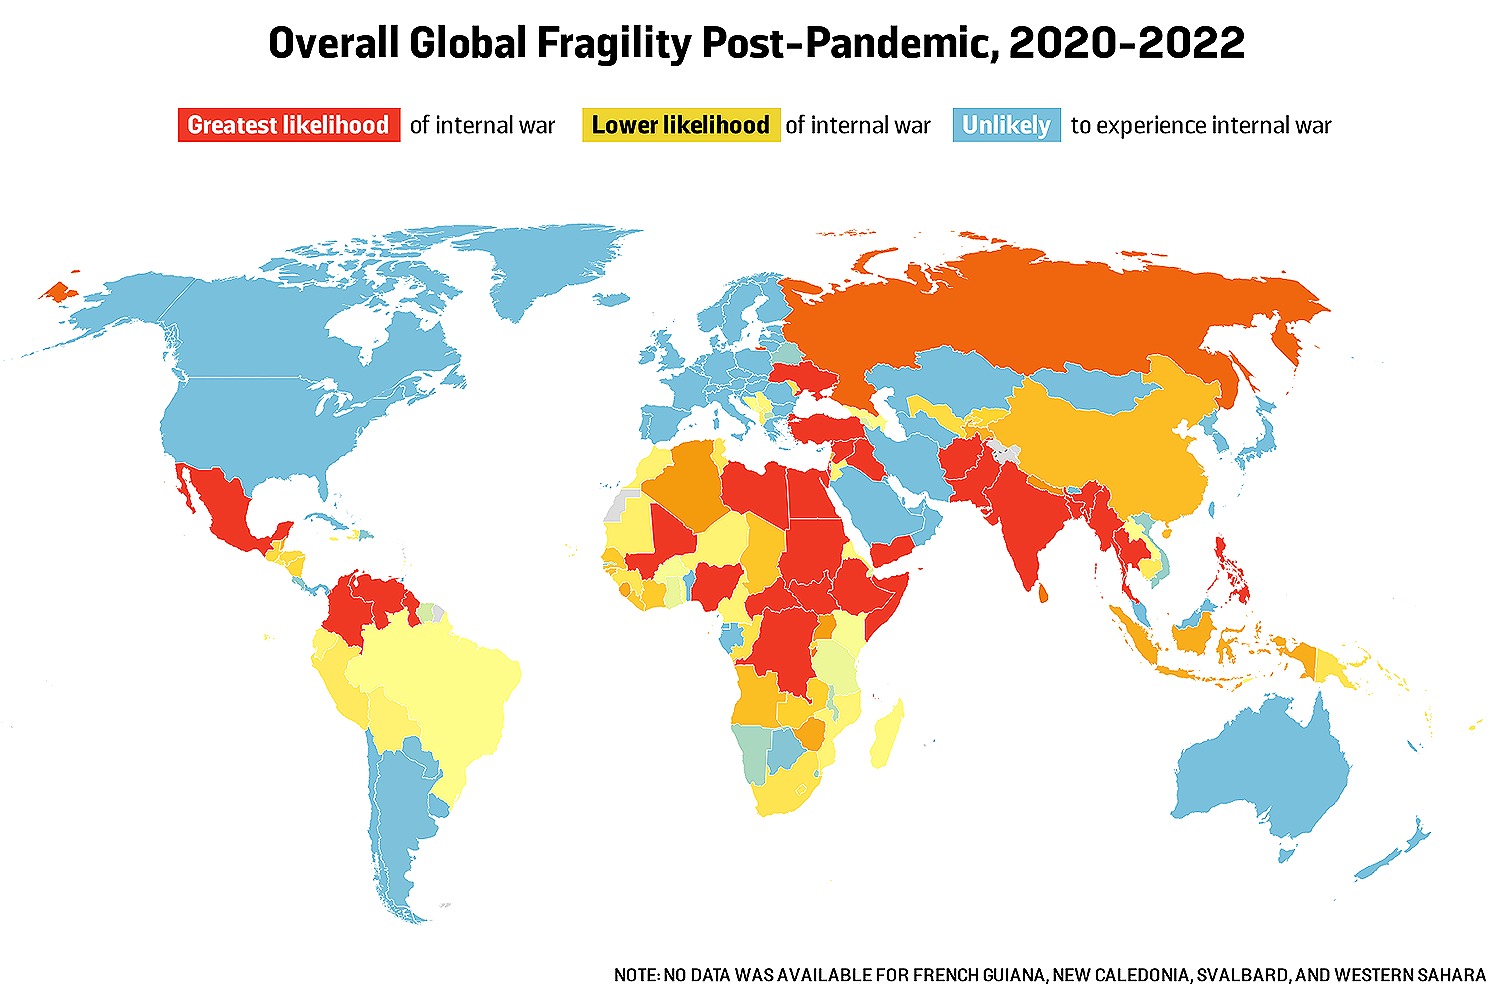 Overall Global Fragility Post-Pandemic, 2020-2022